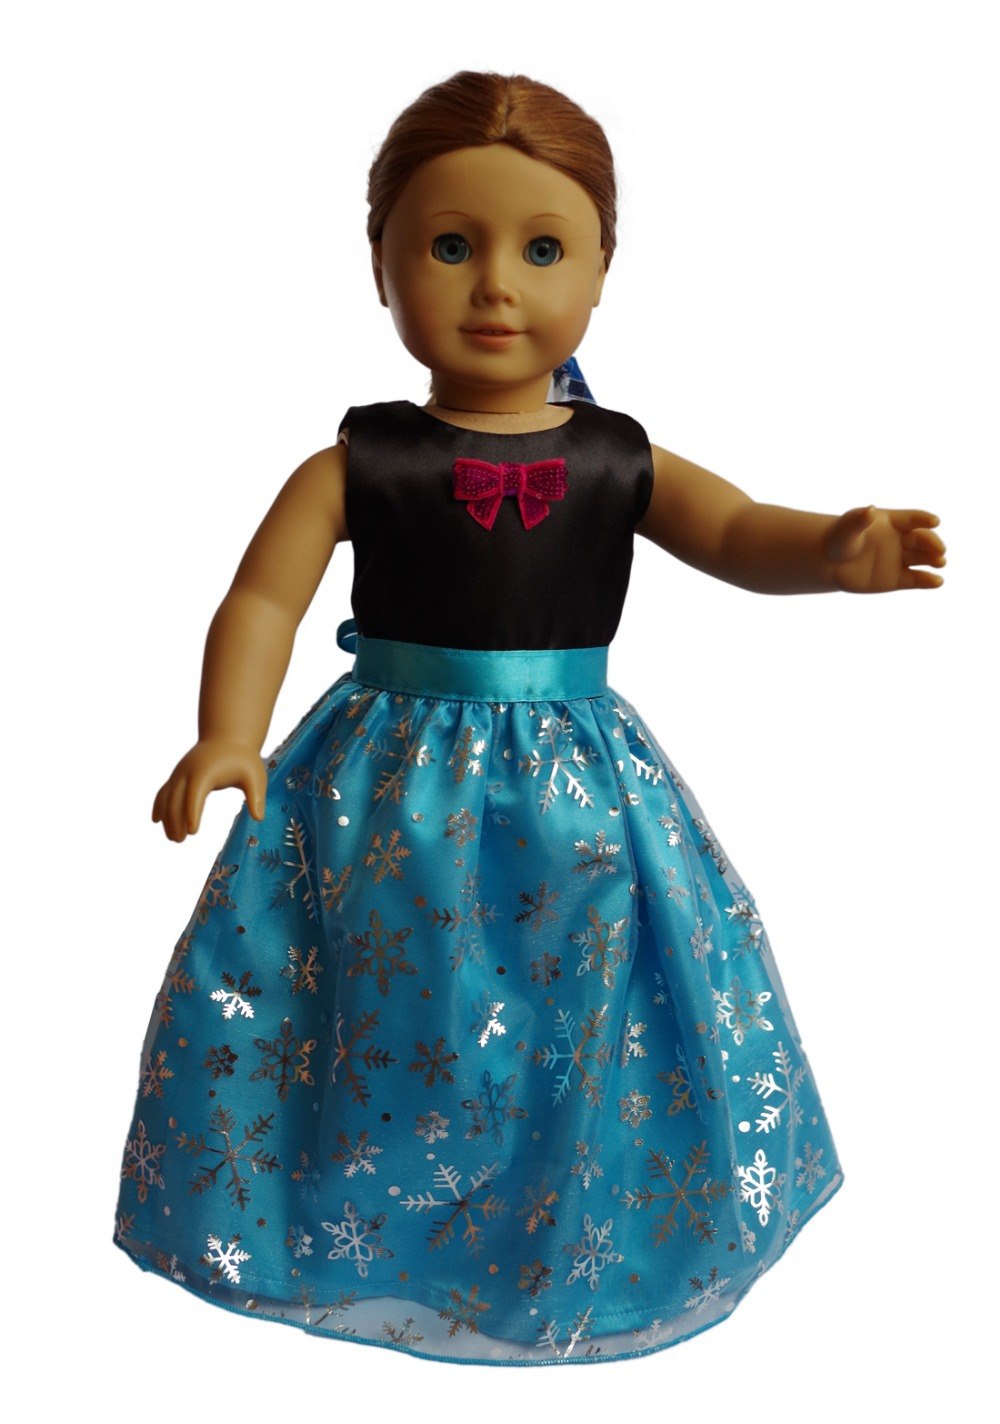 Who Is The New American Doll Of The Year 28 Images Pin